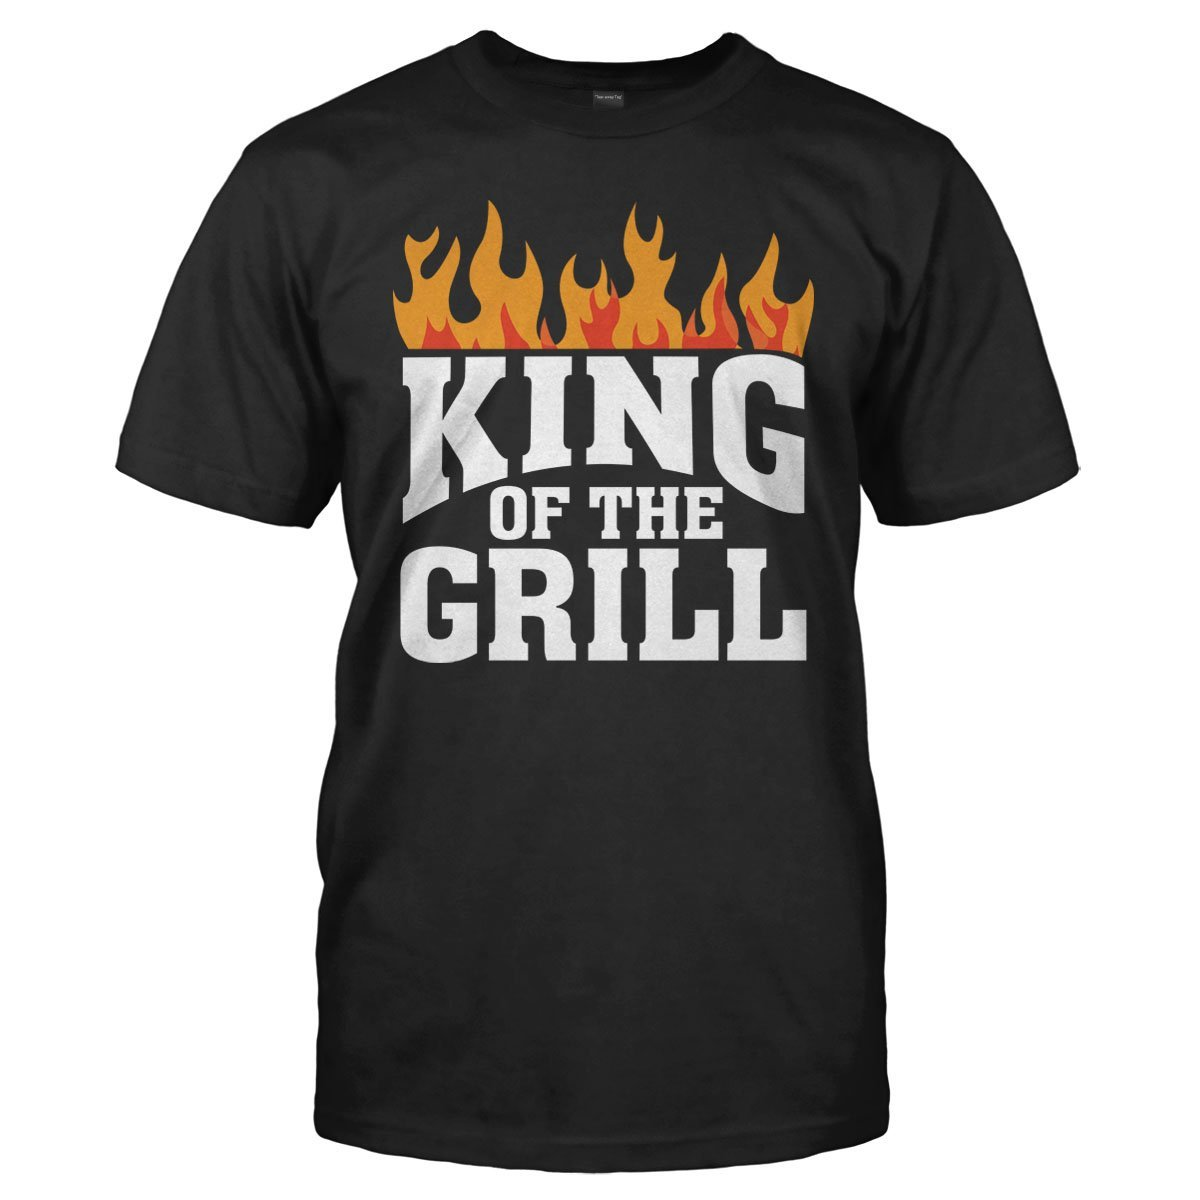 King Of The Grill - T Shirt